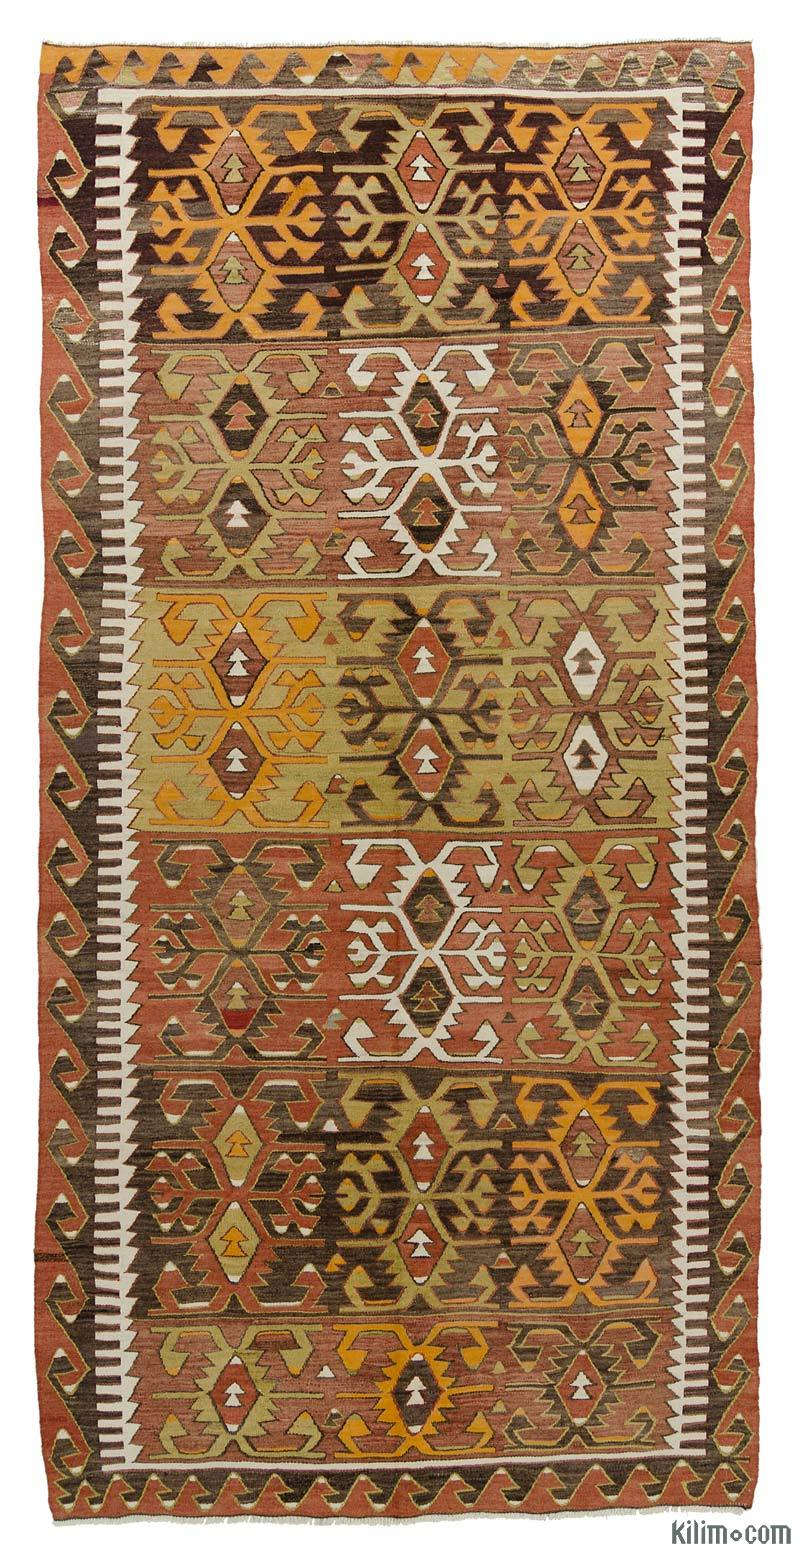 k0015993 multicolor vintage konya kilim rug. Black Bedroom Furniture Sets. Home Design Ideas